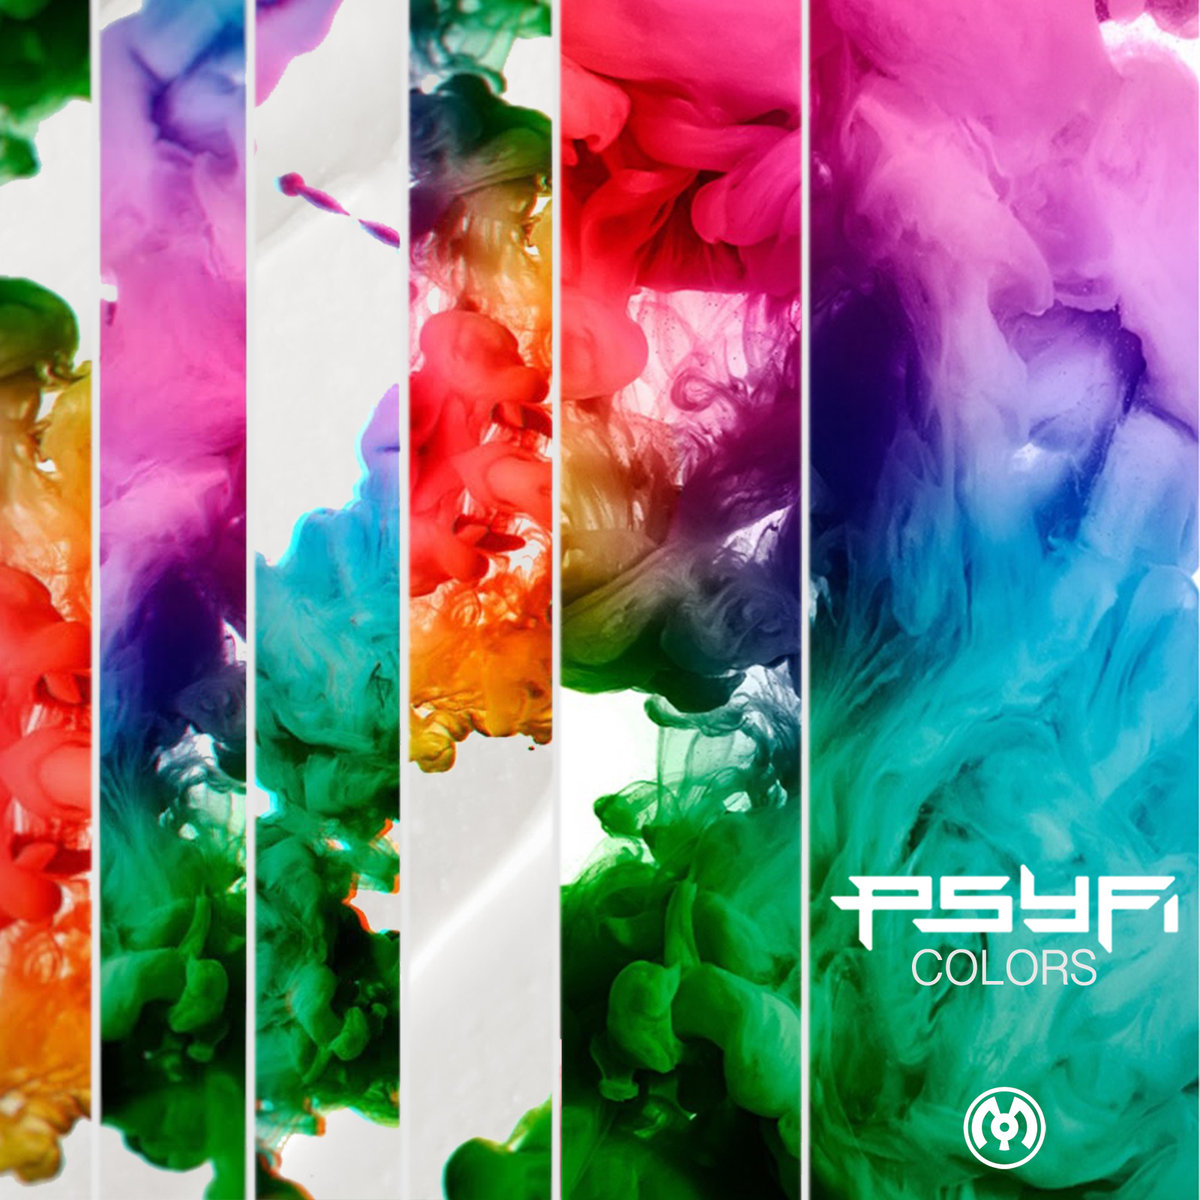 Psy Fi - Abraxas @ 'Colors' album (electronic, dubstep)